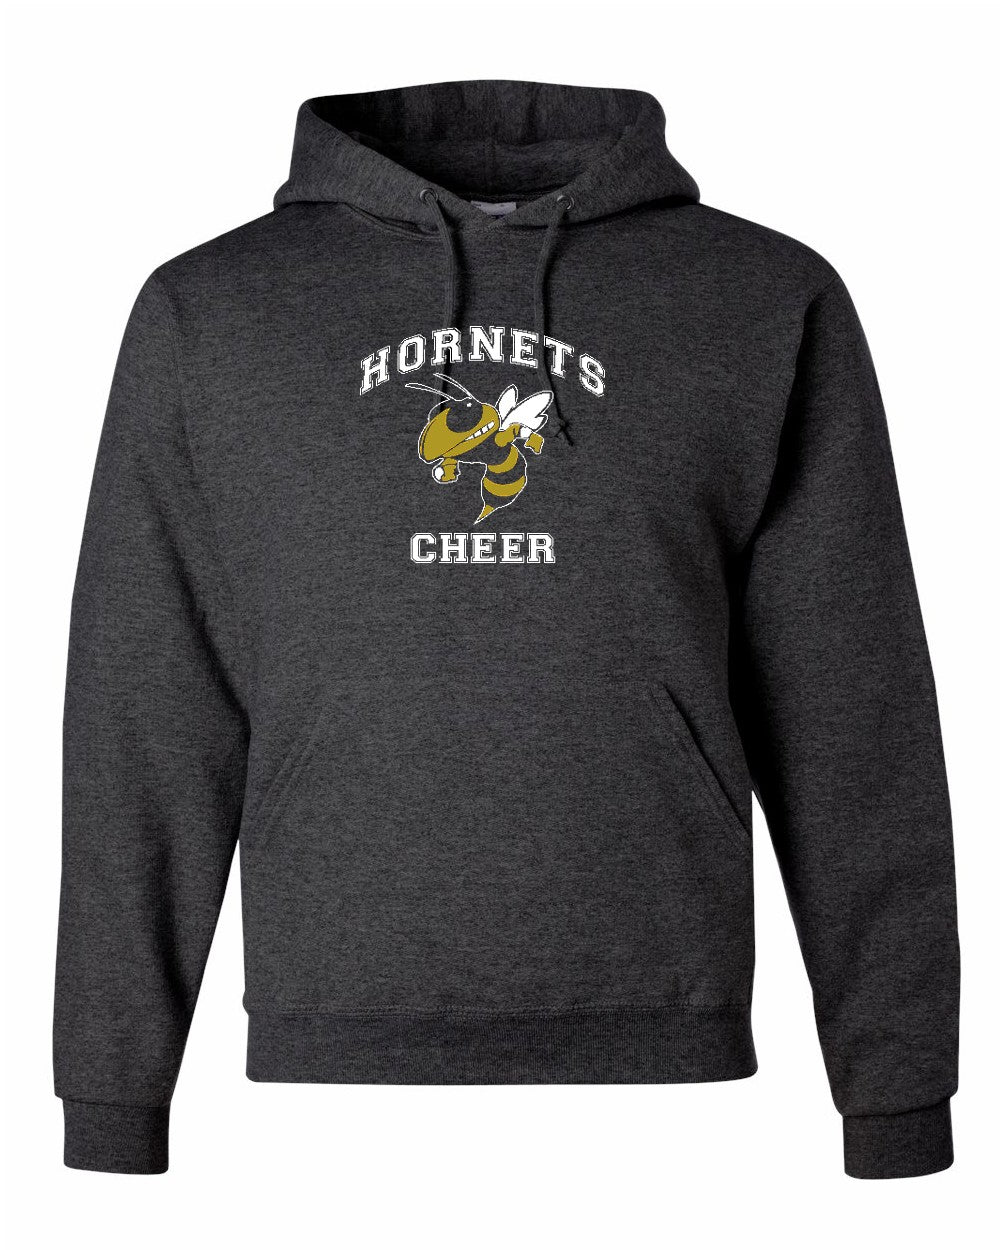 Lemont Hornets Cheer Hooded Sweatshirt